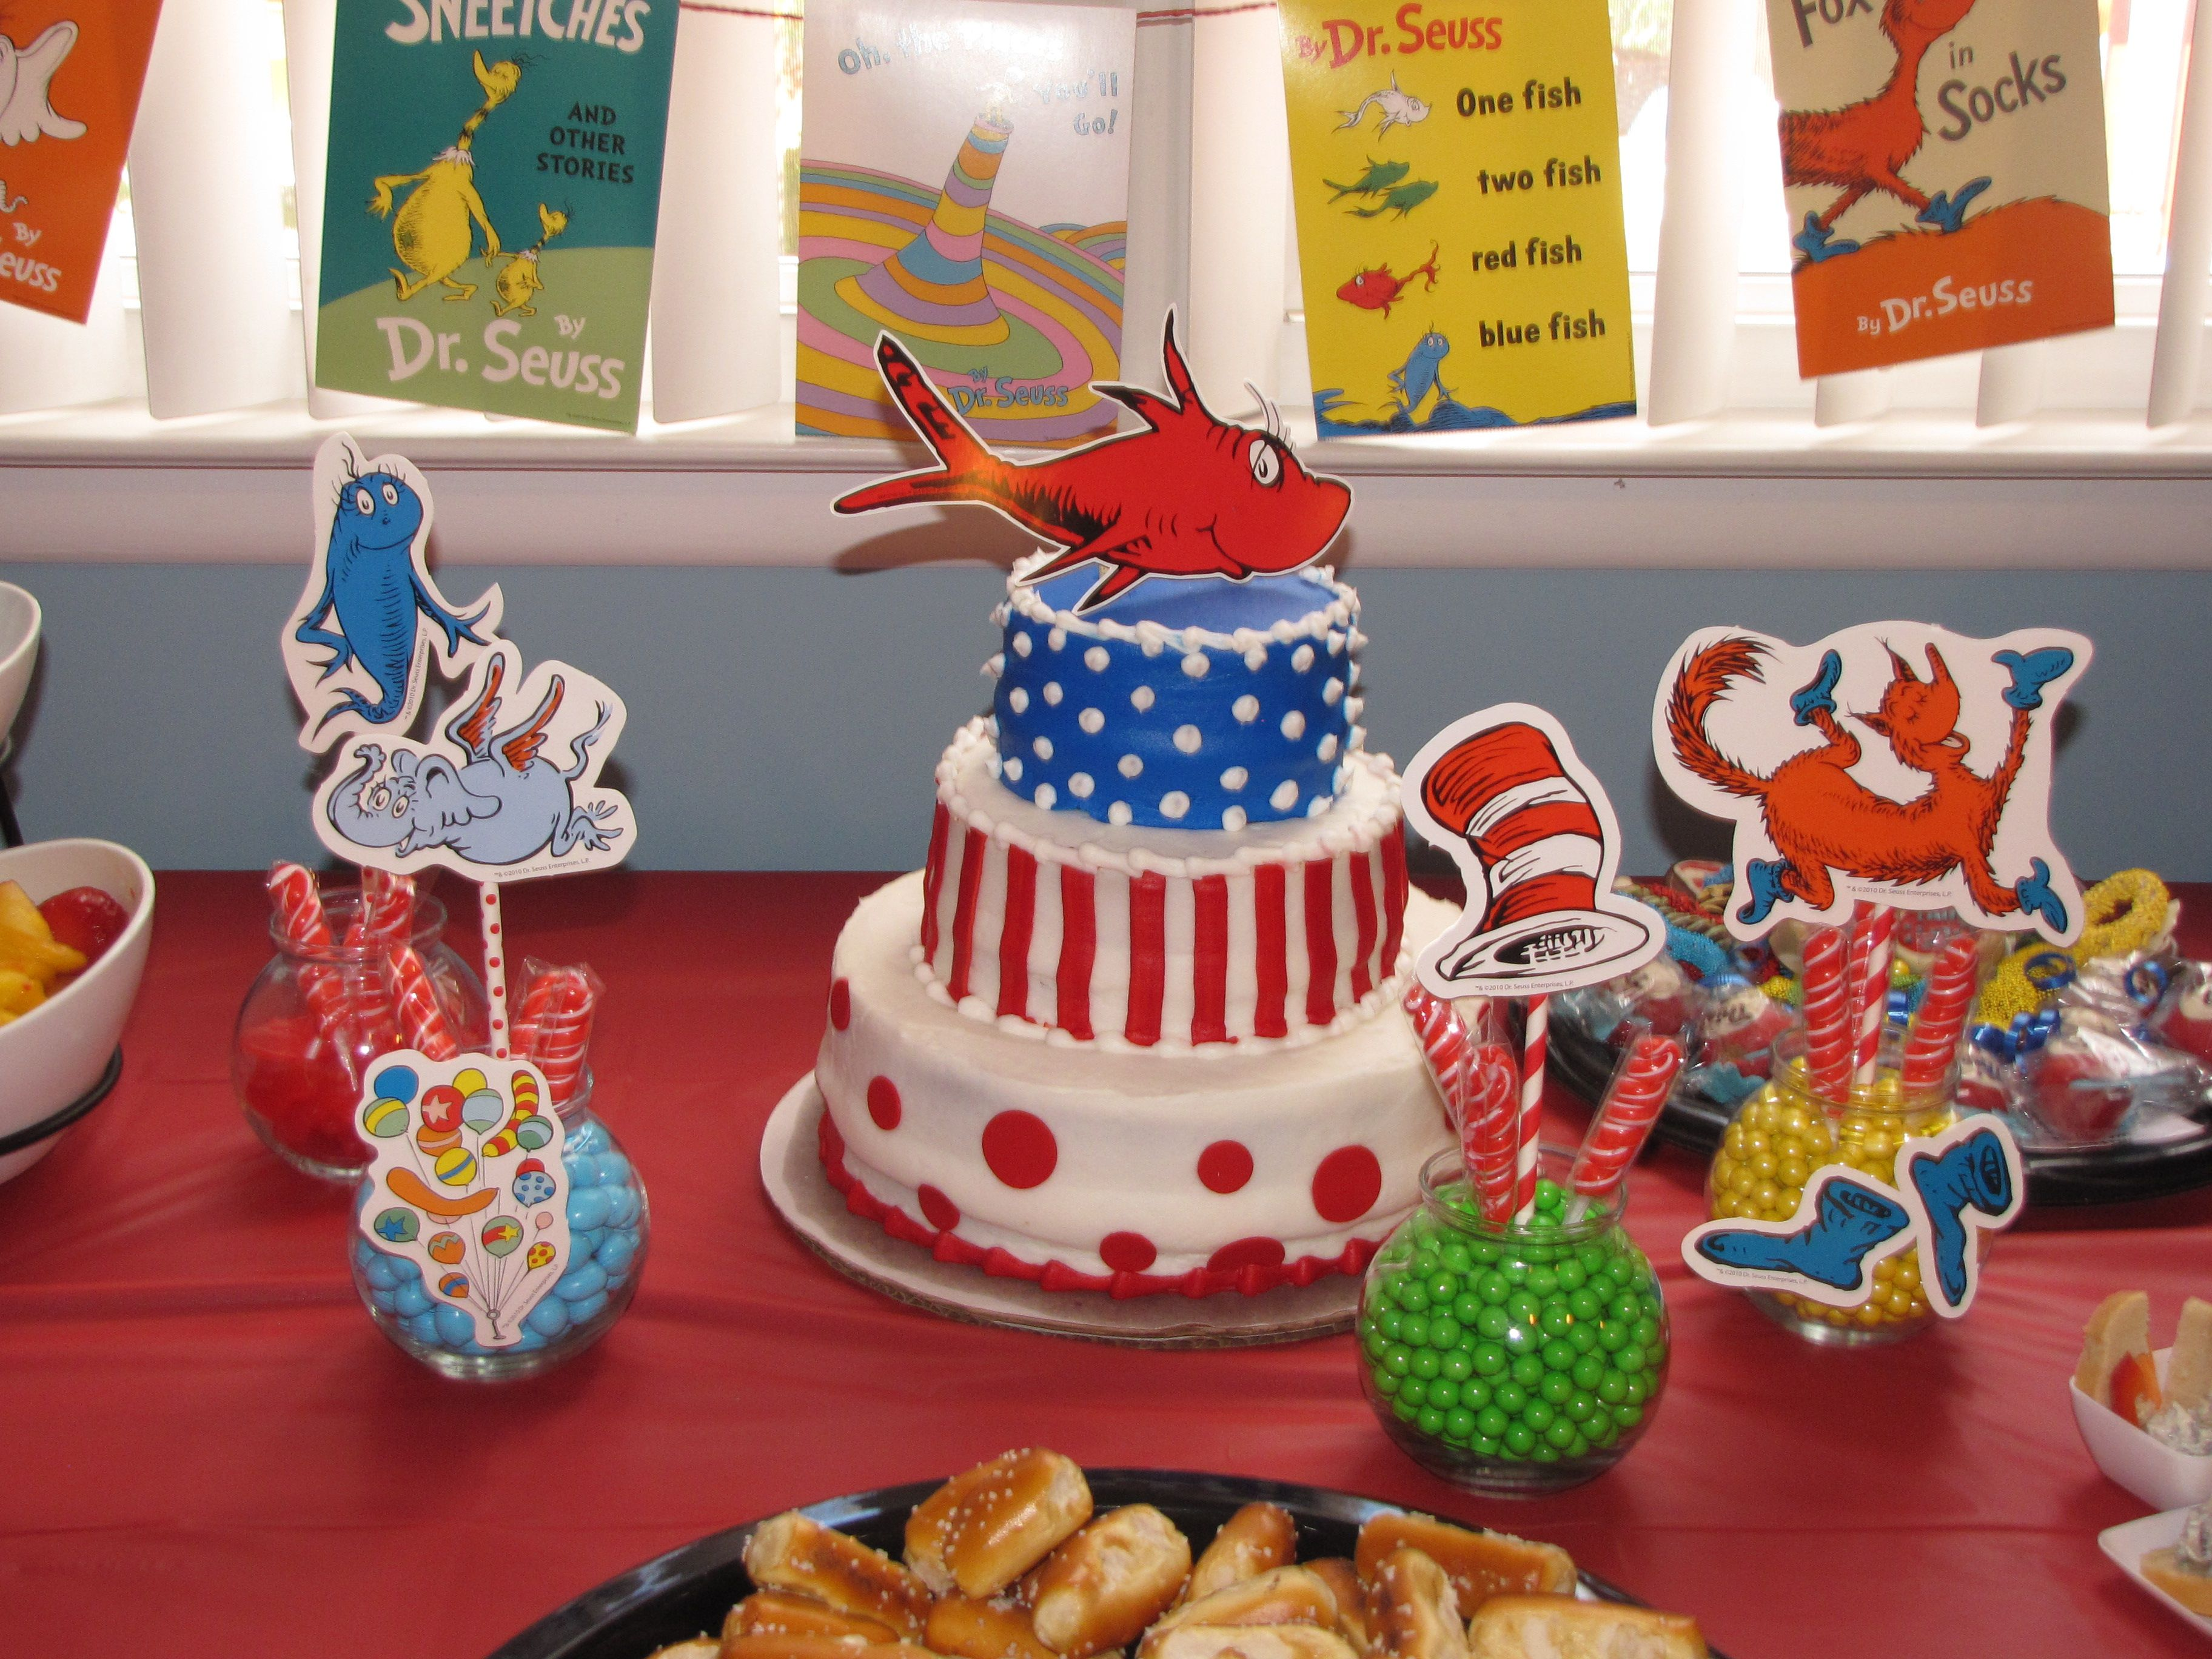 Dr. Seuss cake from local grocery store bakery. Three tiers with ...